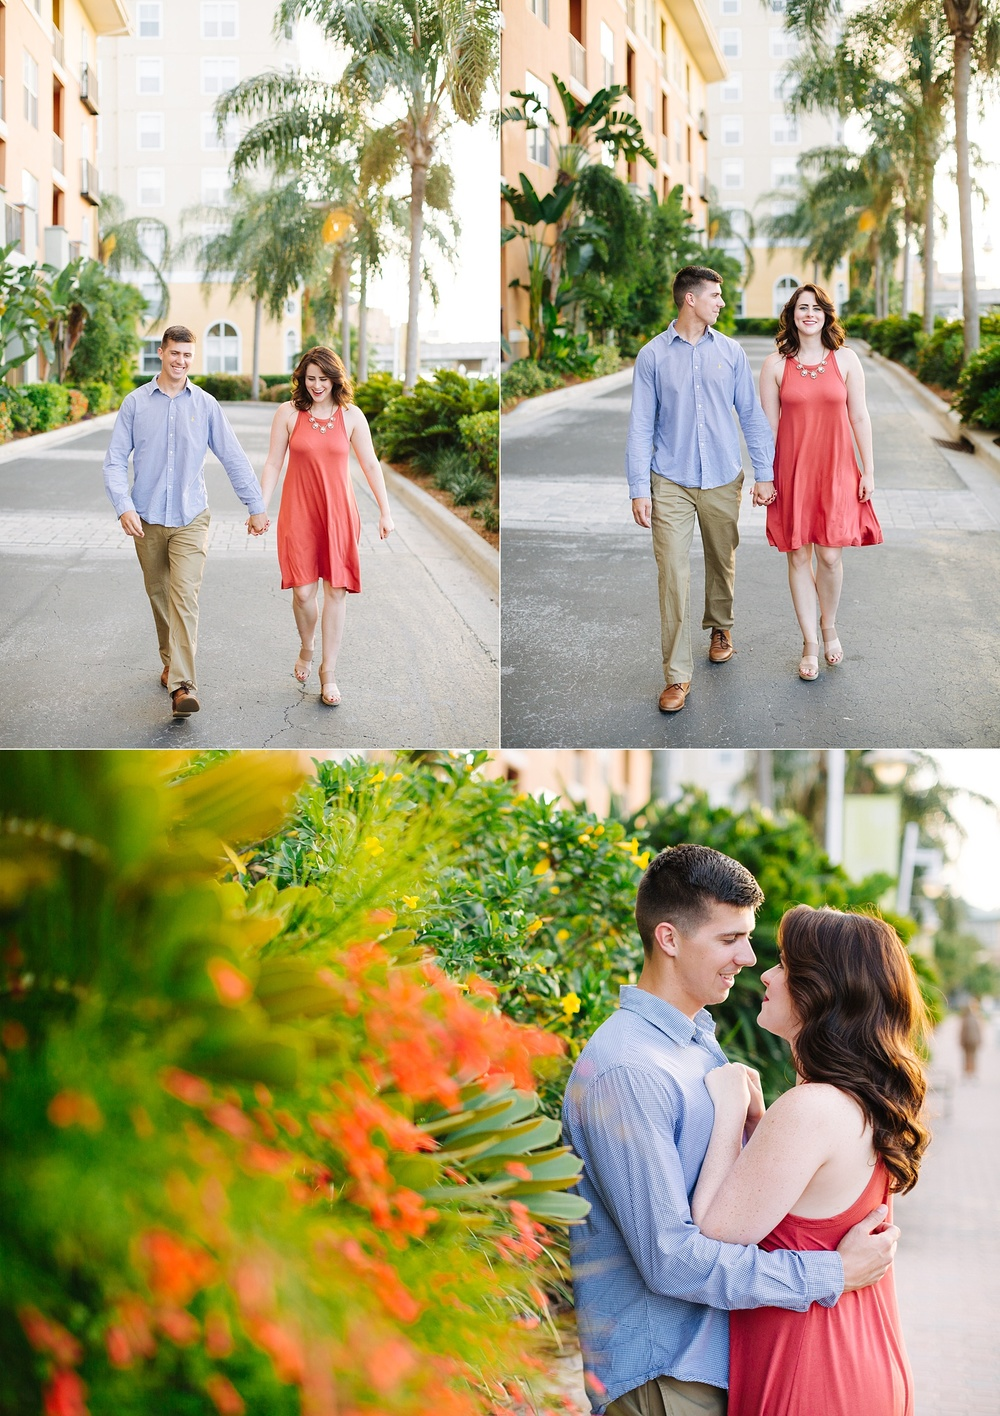 conor mikaela harbour island tampa engagement session jake and katie_002